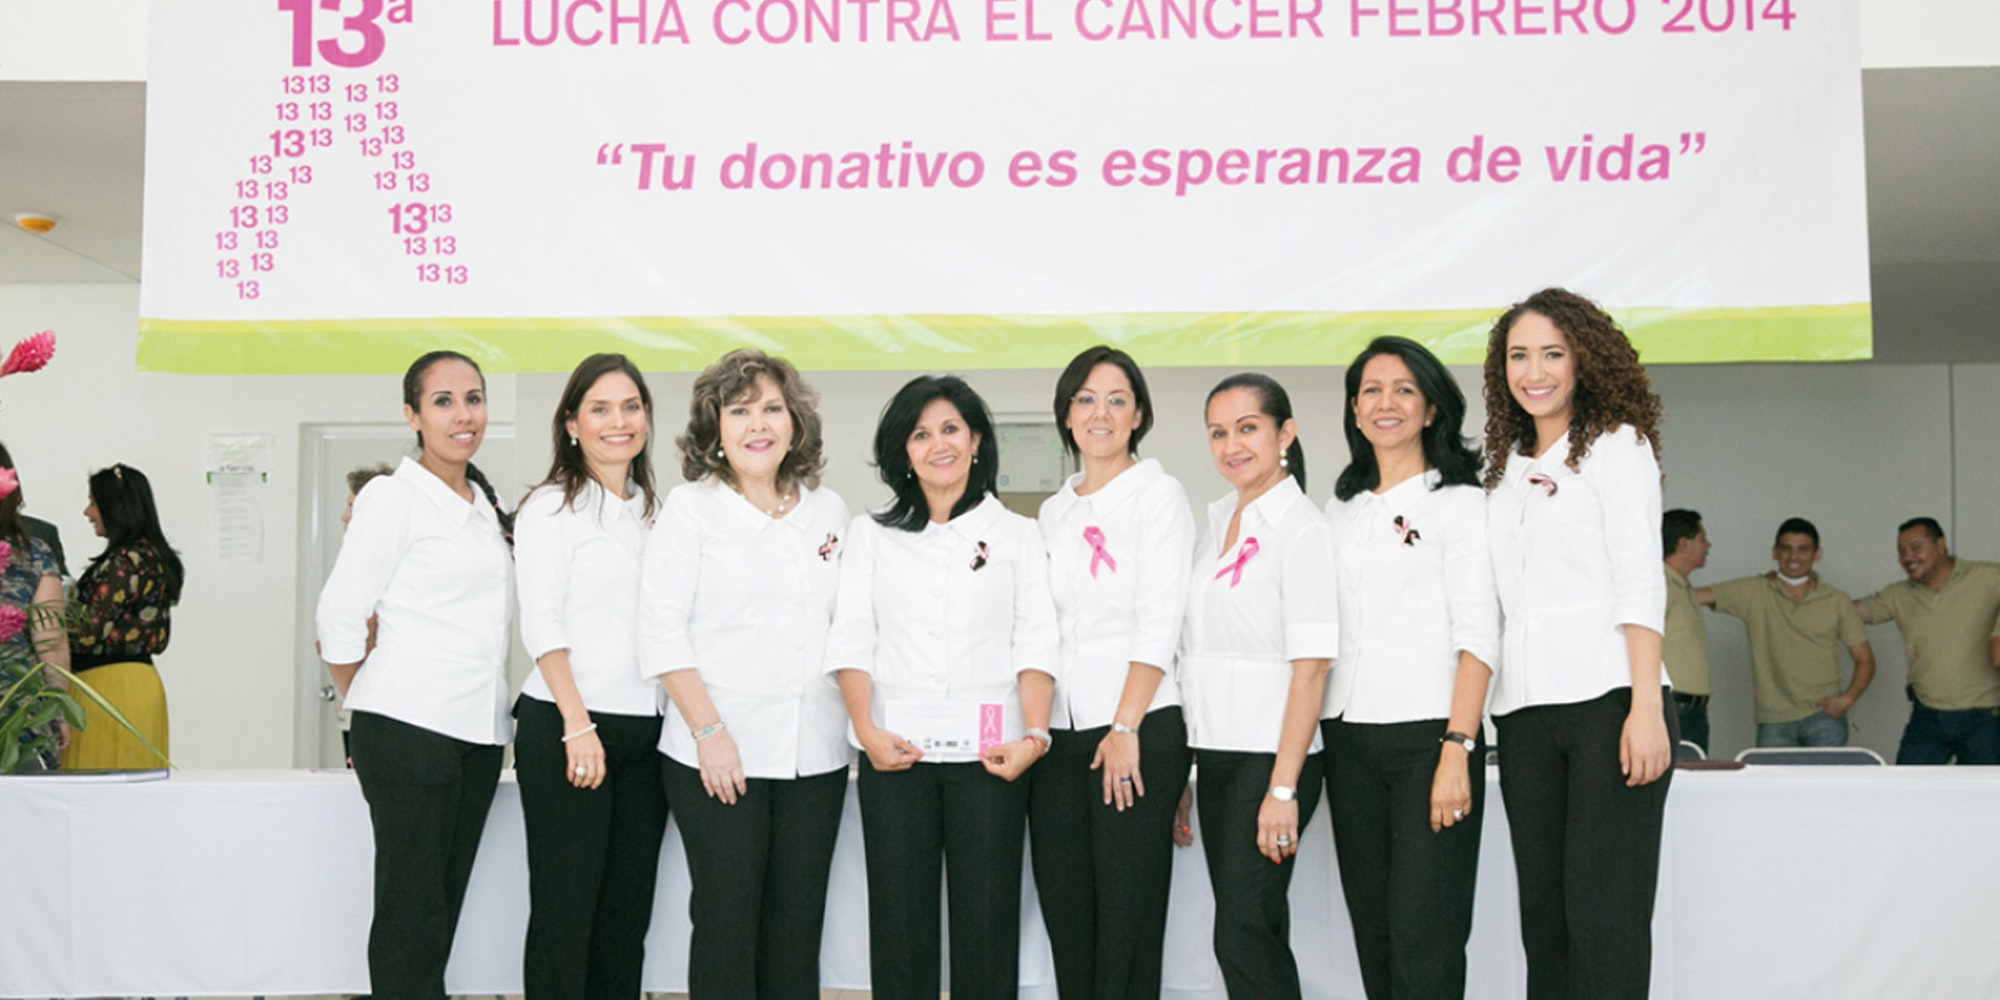 Cover Image for Inicia Colecta Anual De Lucha Contra El Cáncer